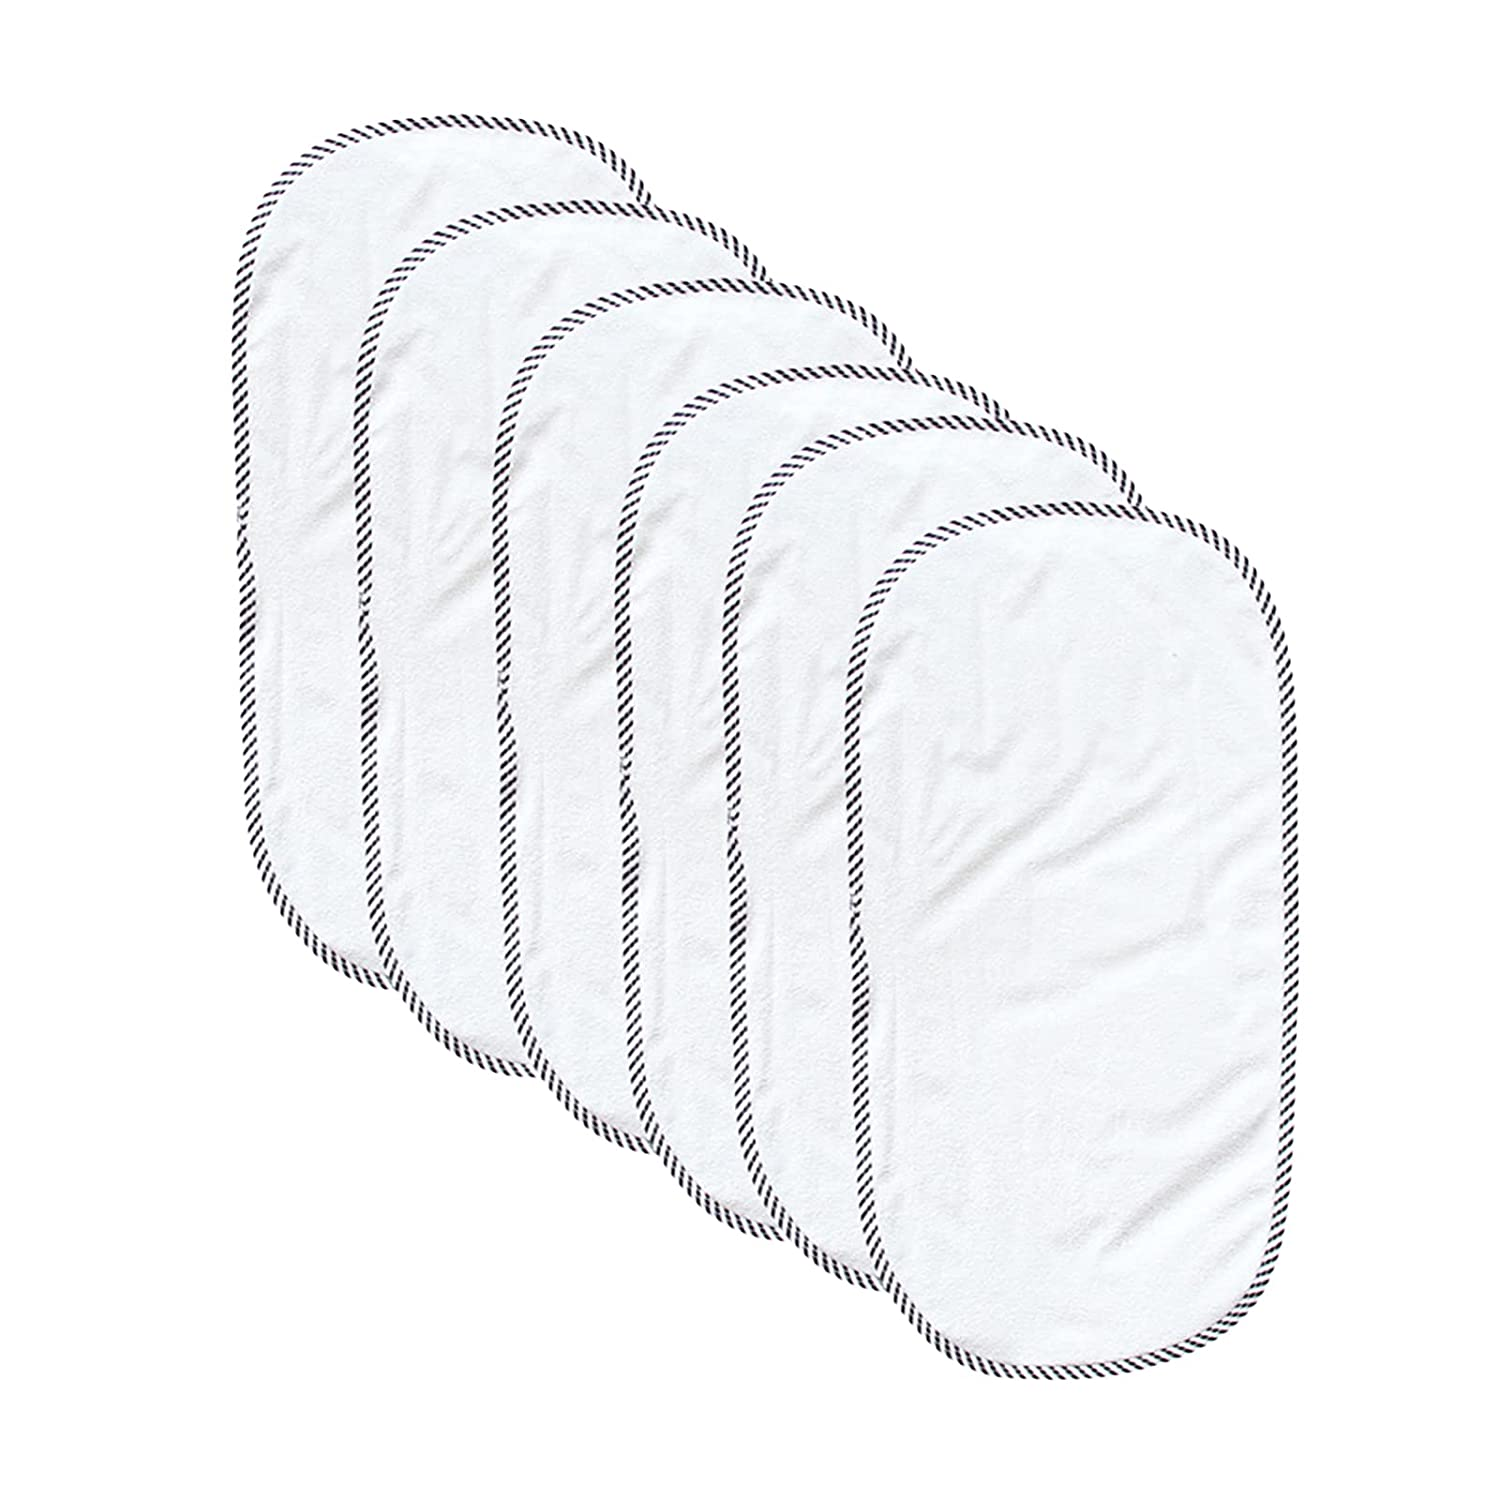 Owlike Bamboo Ultra Softer Waterproof Changing Table Cover Liners Reusable Changing Pad Liners 6pcs for Babies